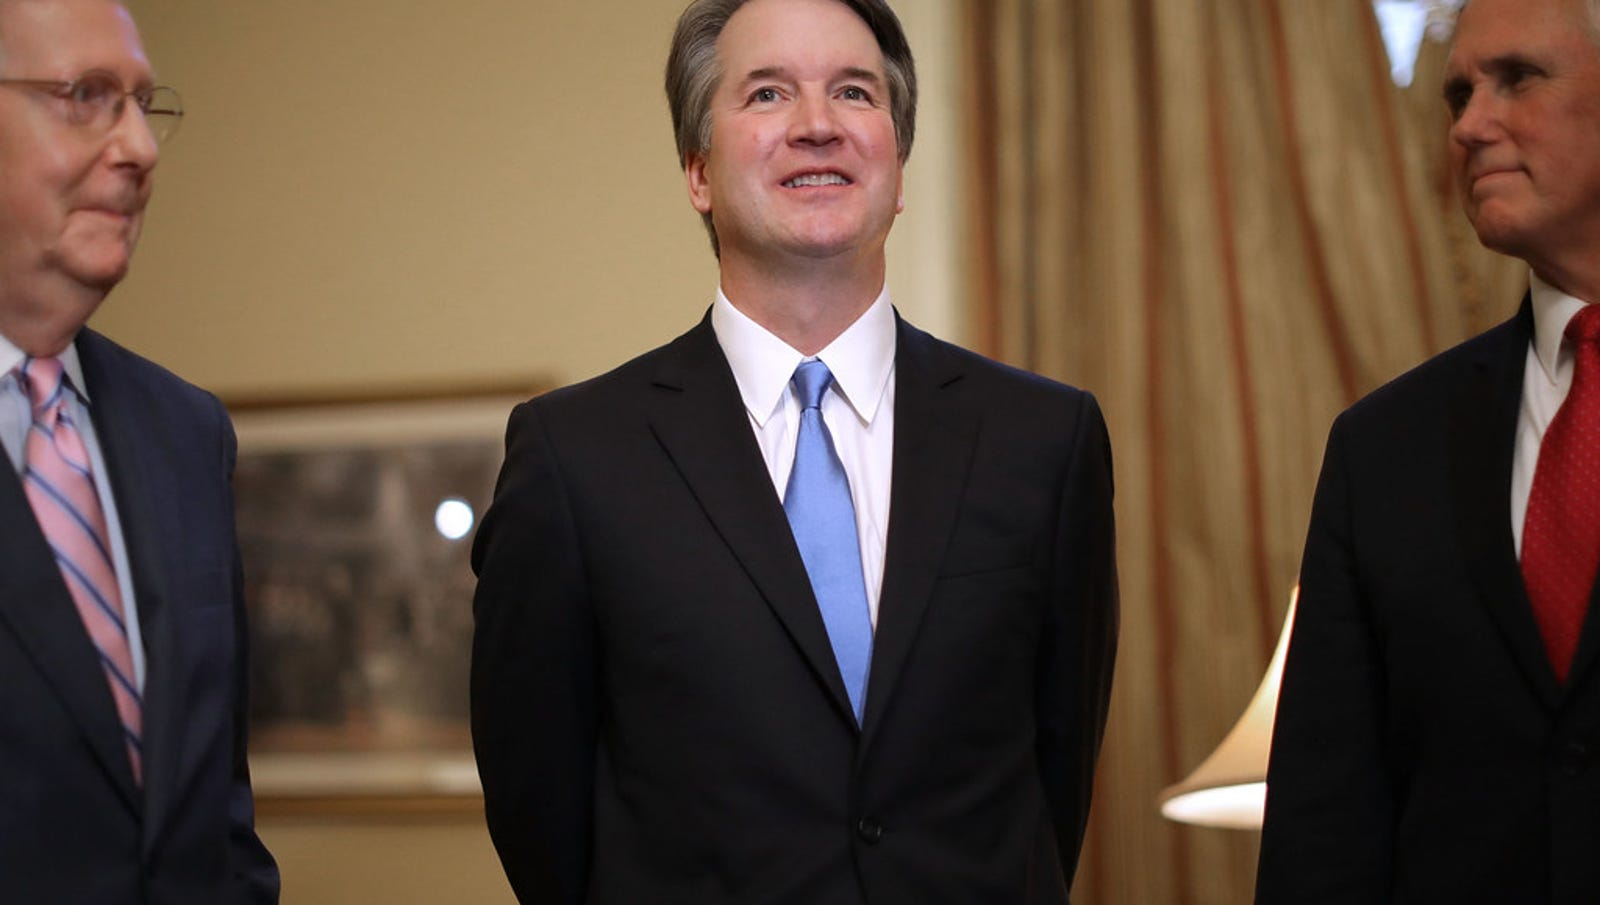 Why Supreme Court nominee Brett Kavanaugh should appeal to both Democrats and Republicans